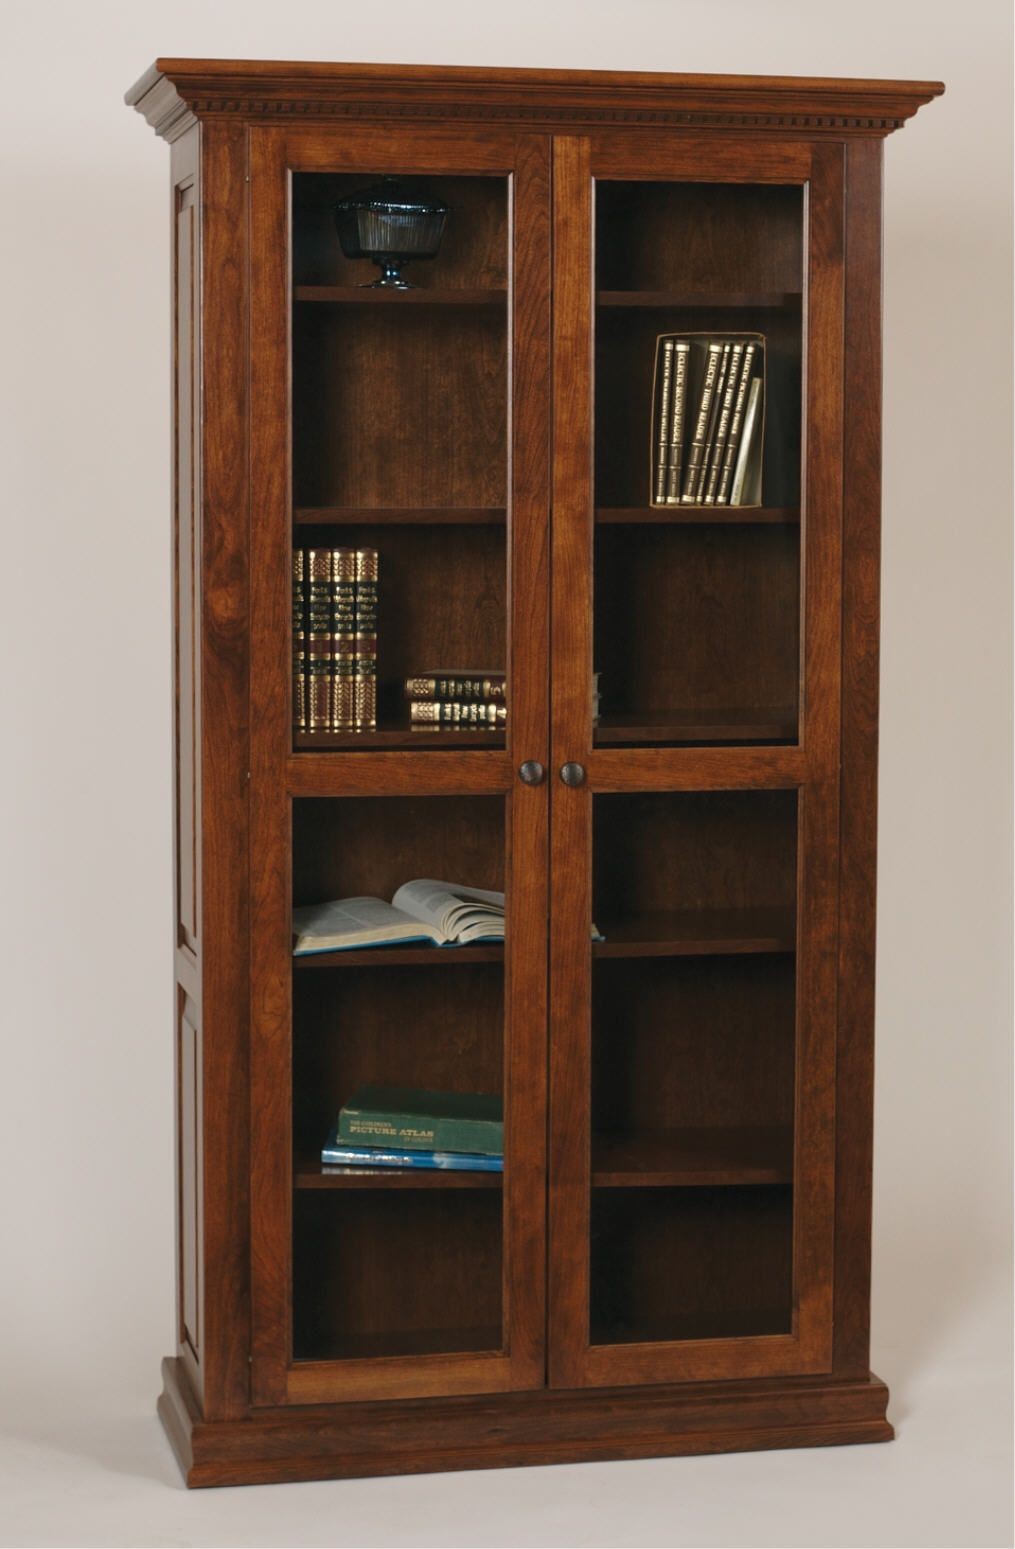 Bookcase With Glass Doors Bookcase Mission Furniture Wood bookcase with glass doors